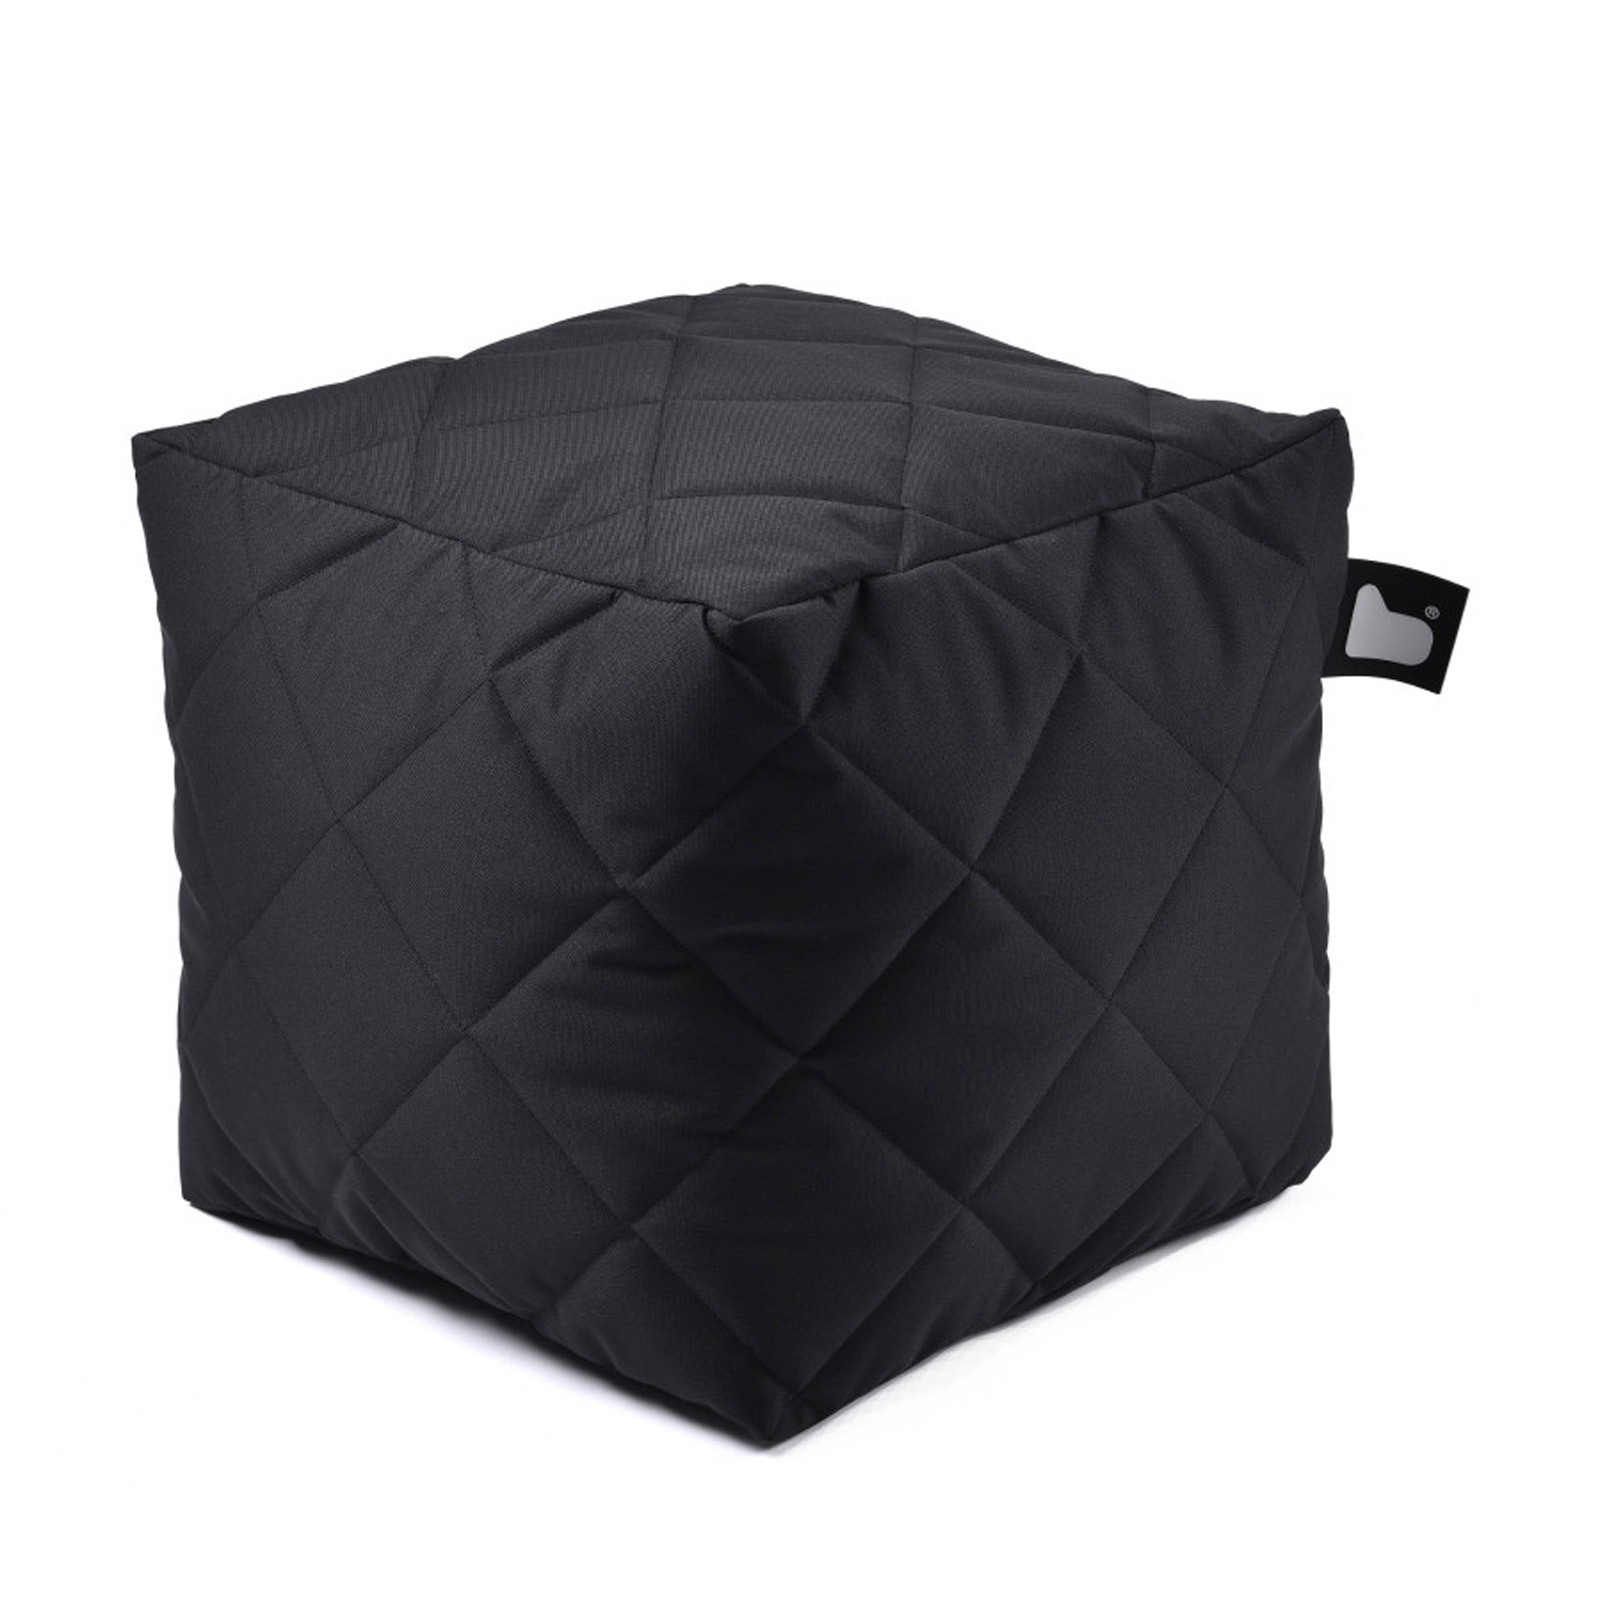 b-bag Extreme Lounging gesteppter Sitzwürfel b-box Quilted Farbe Black